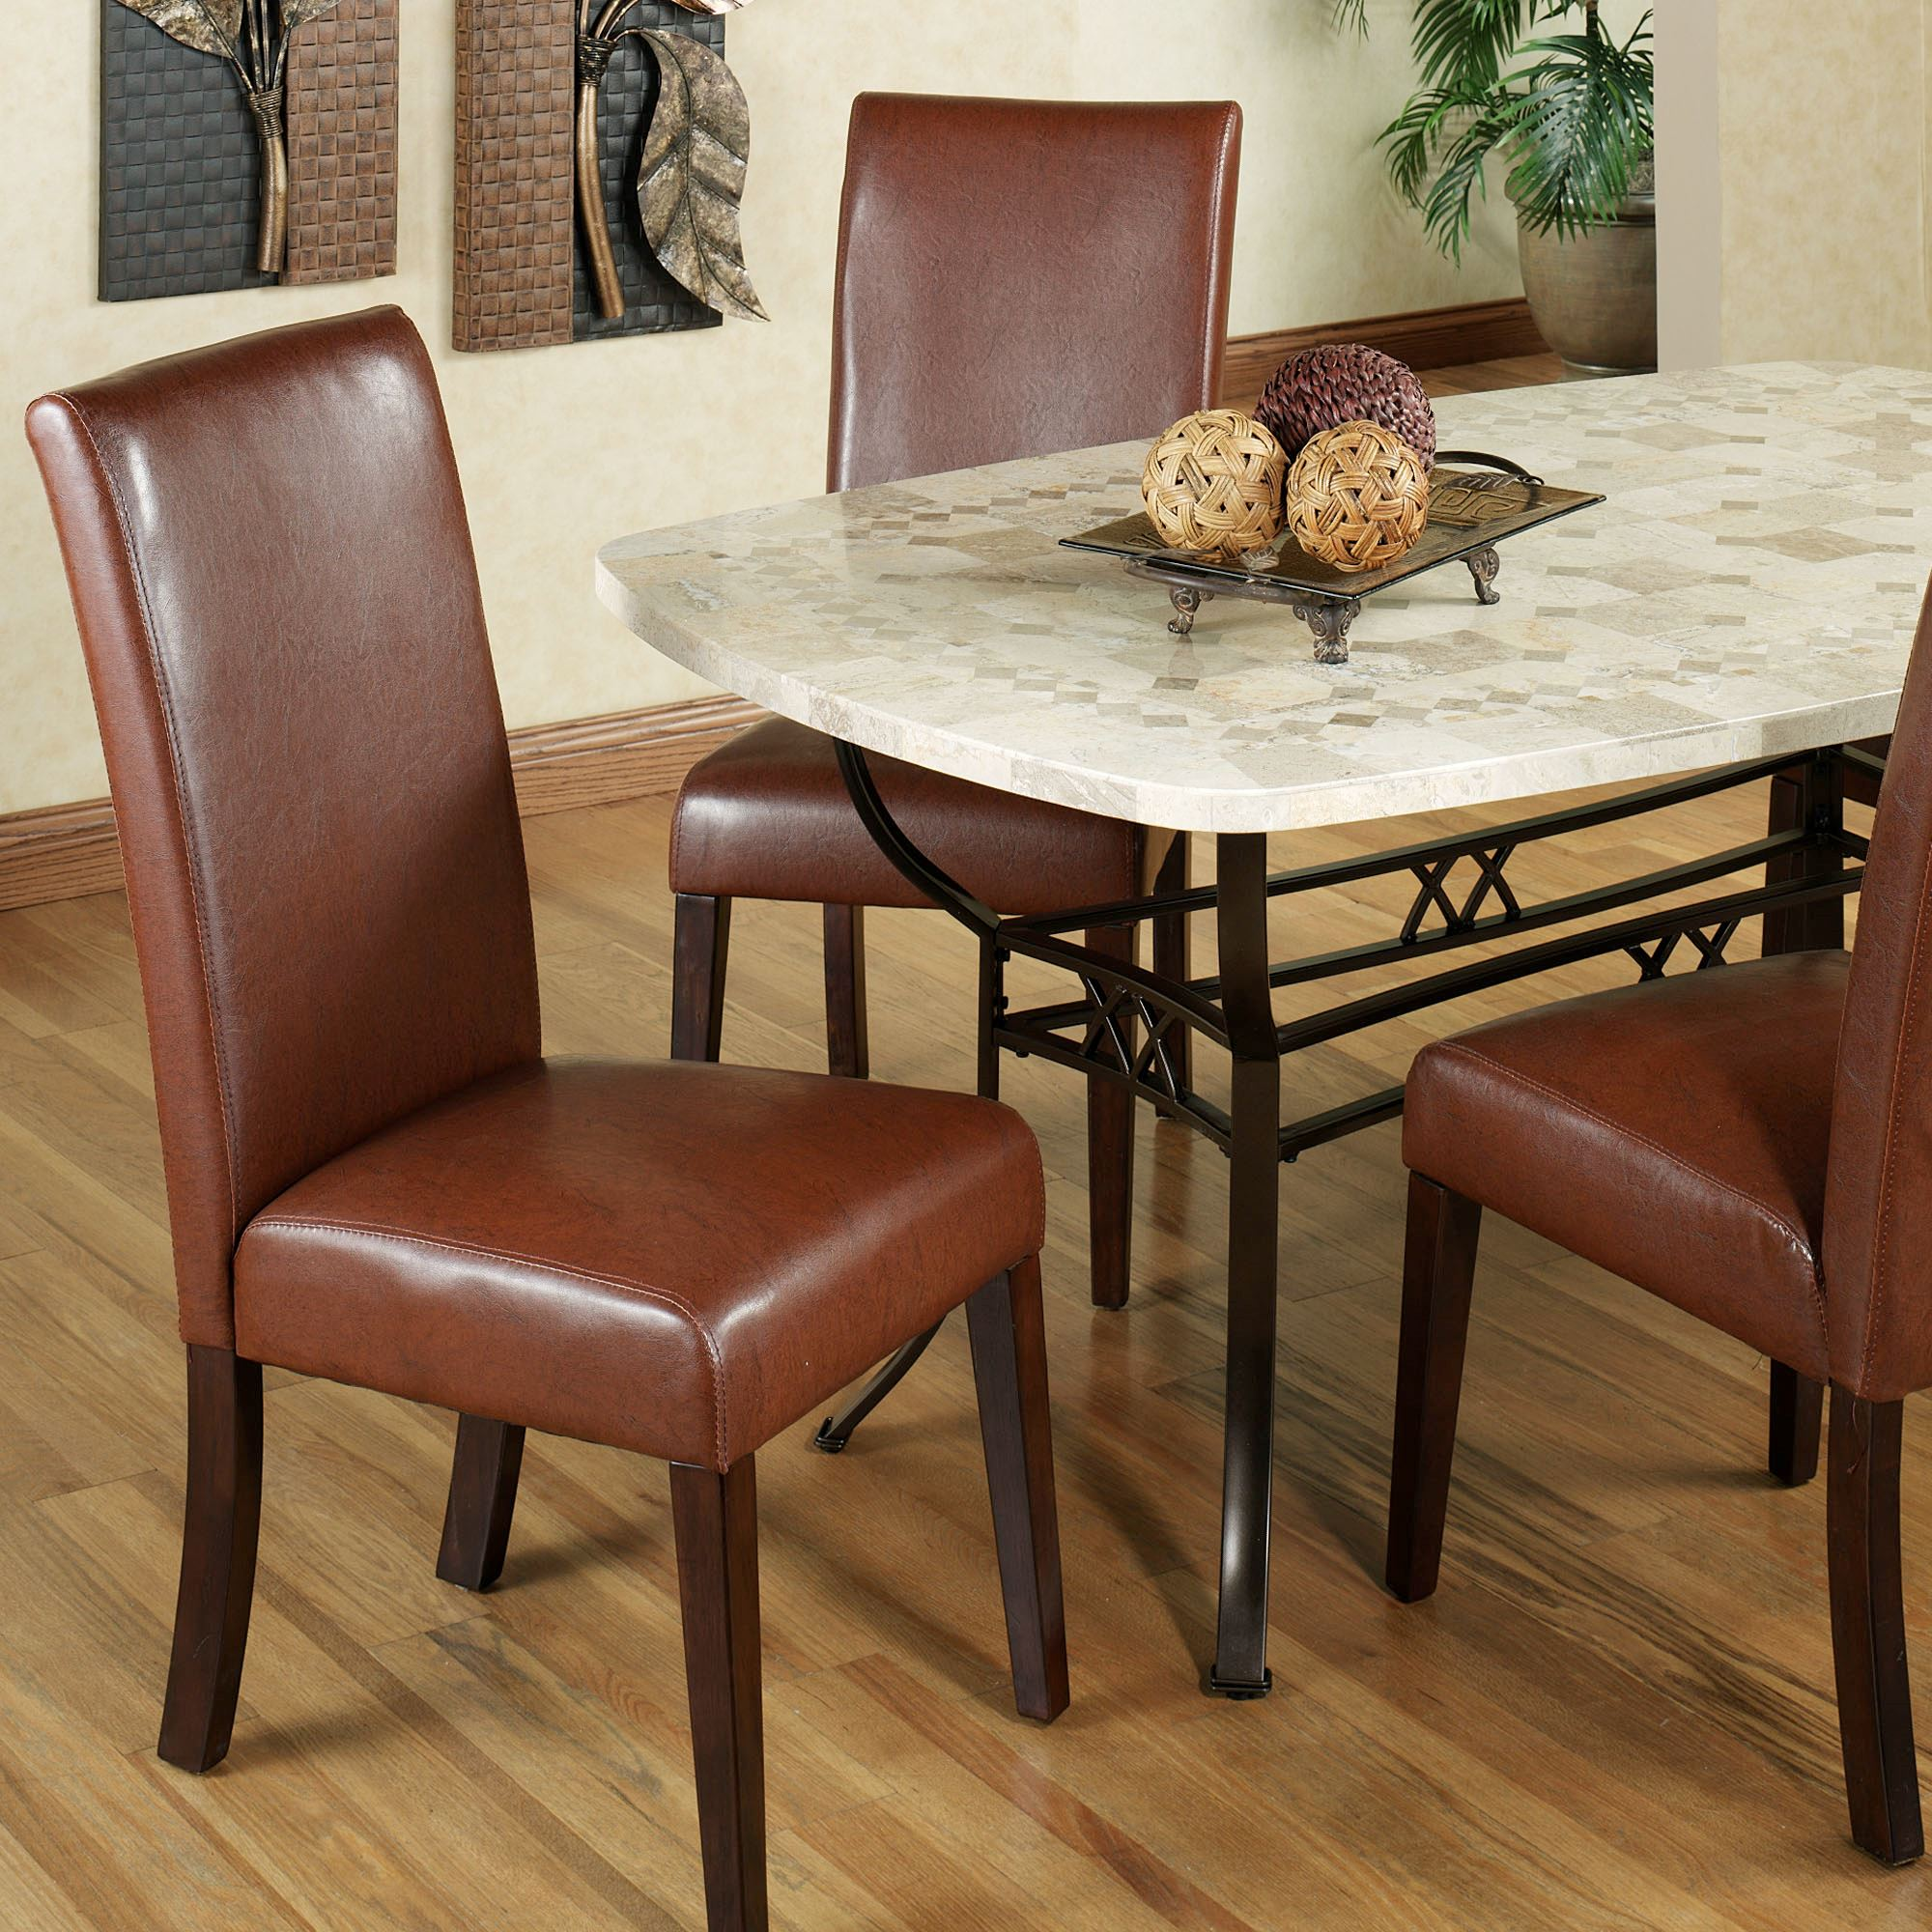 Kemper Rawhide Color Faux Leather Dining Chair Pair